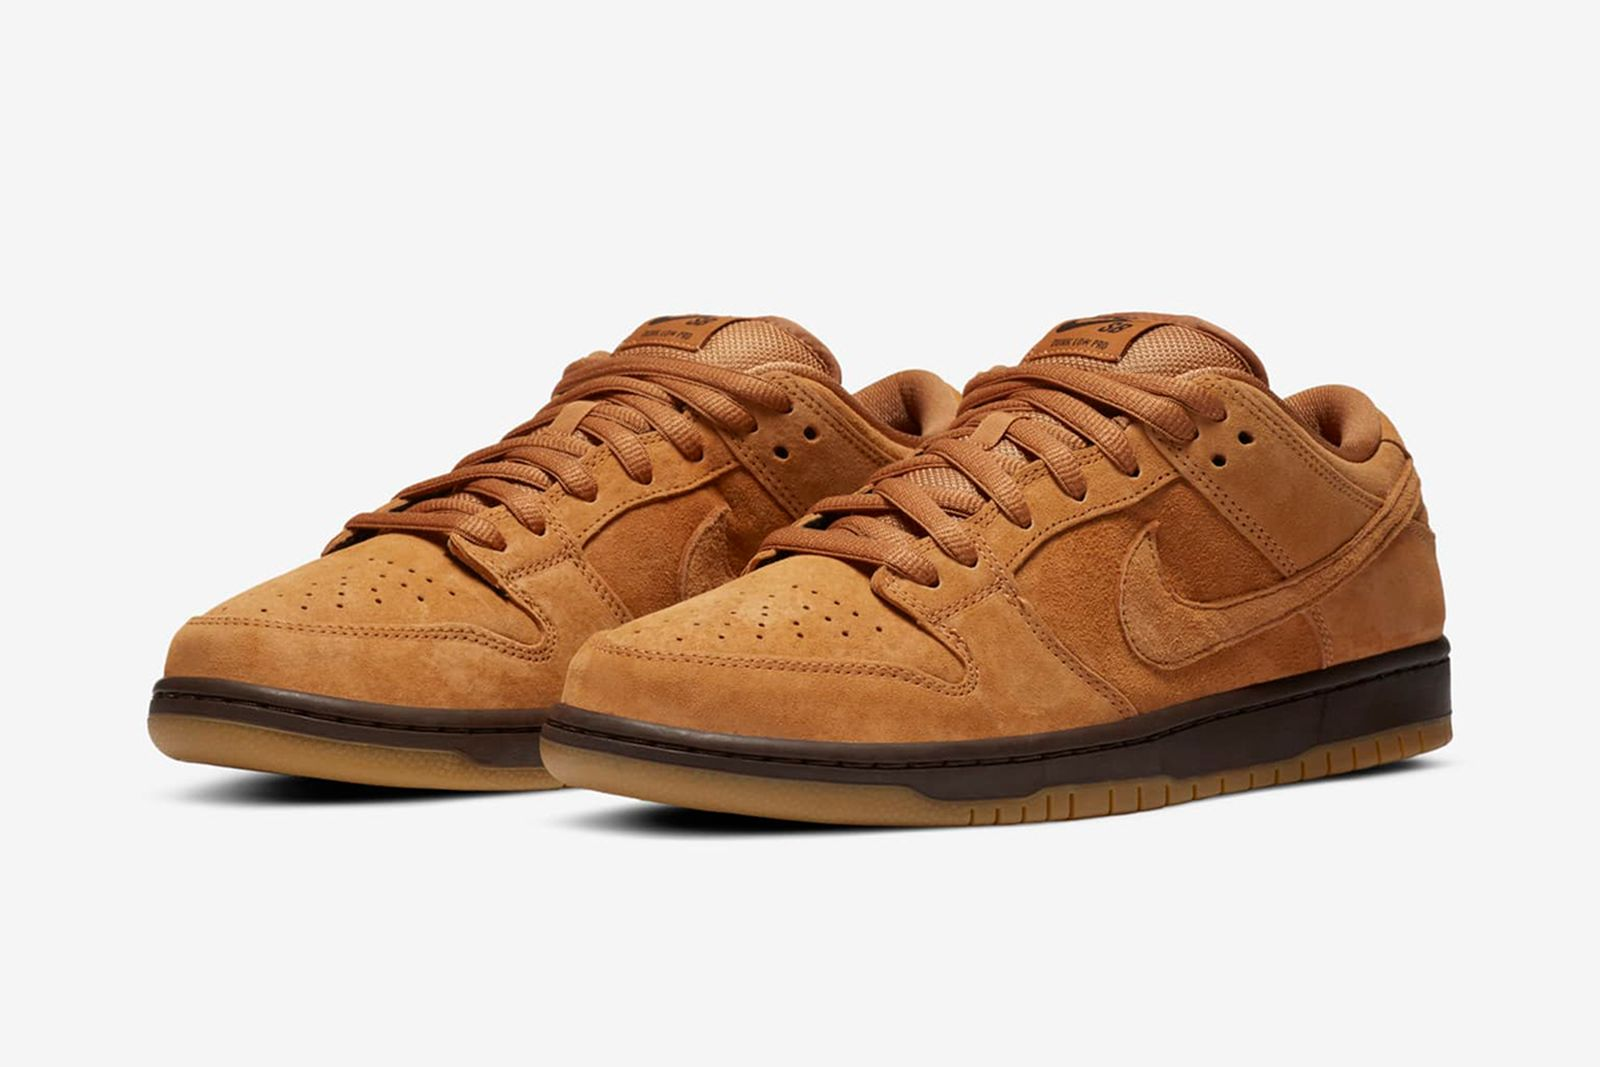 nike-sb-dunk-low-wheat-release-date-price-new-03